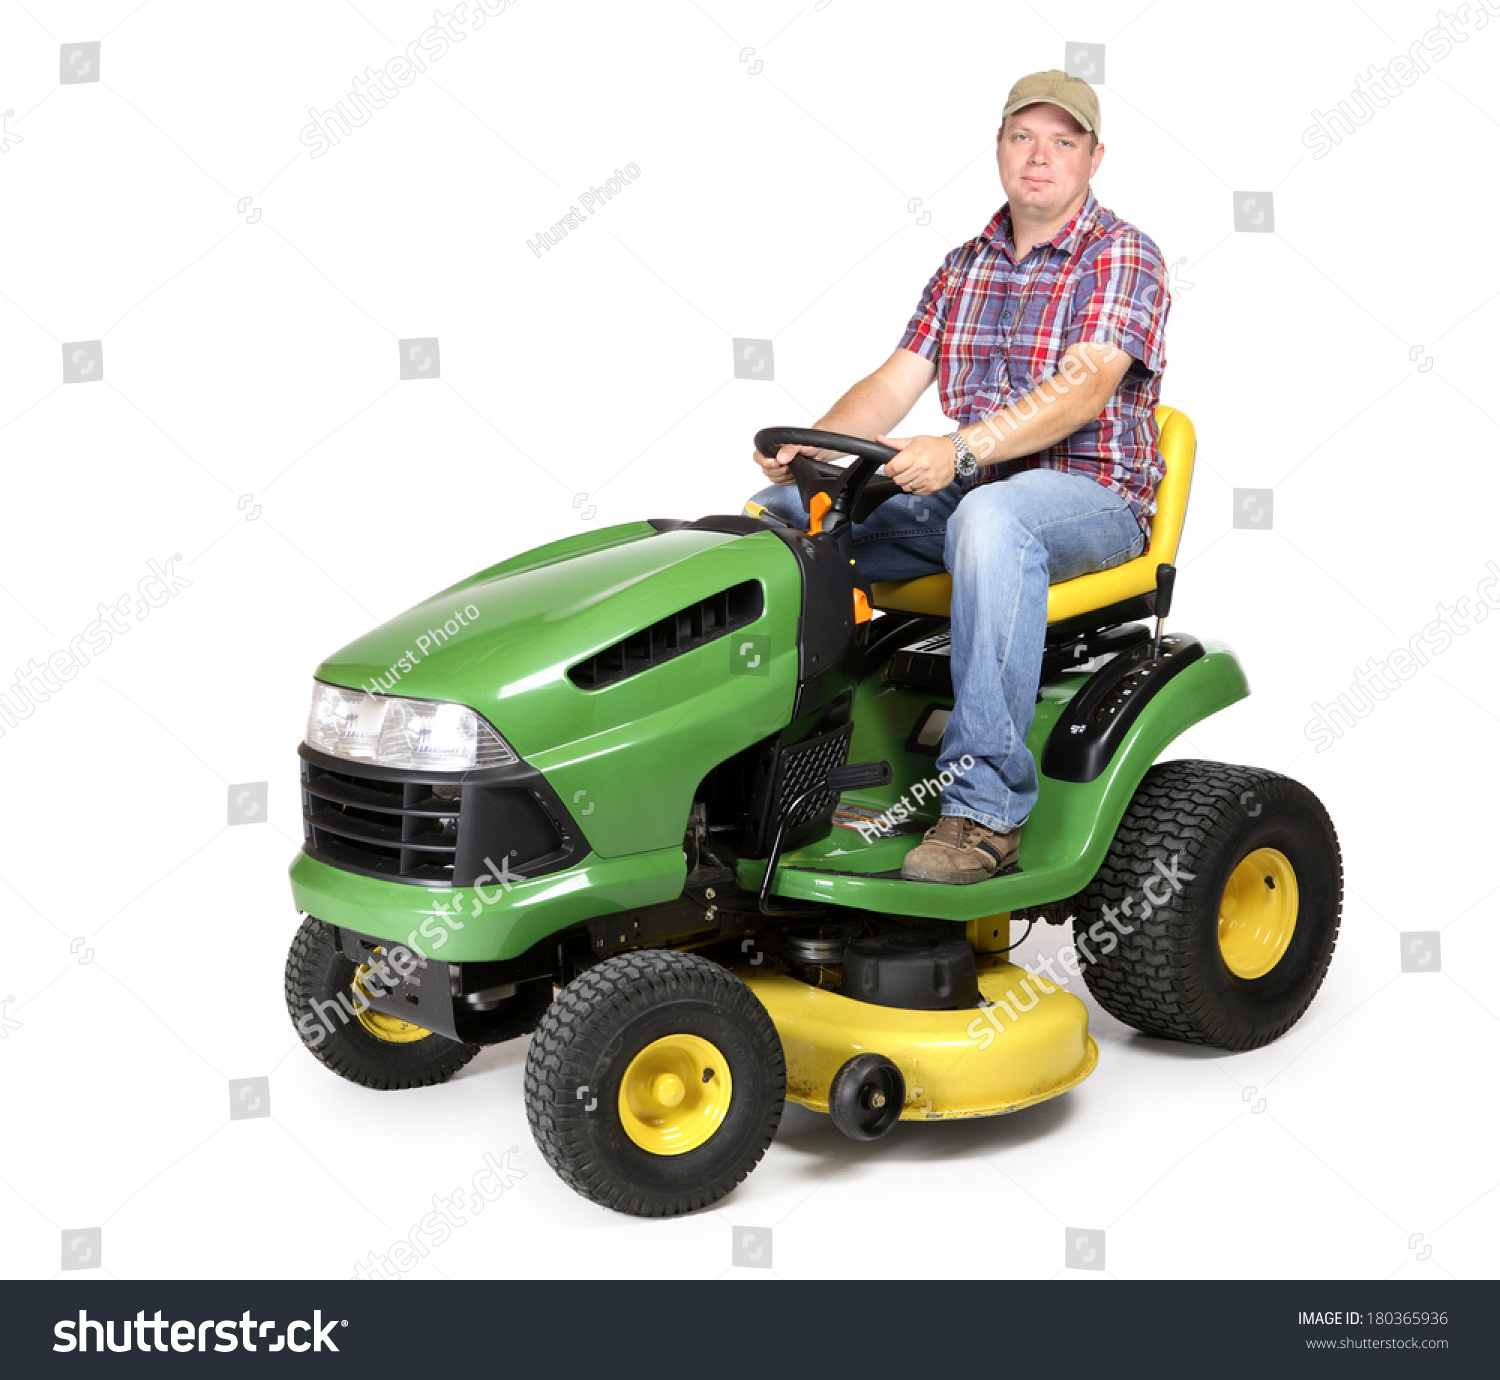 Man On Tractor Lawn Enforcment : Lawn tractor man riding stock photo shutterstock